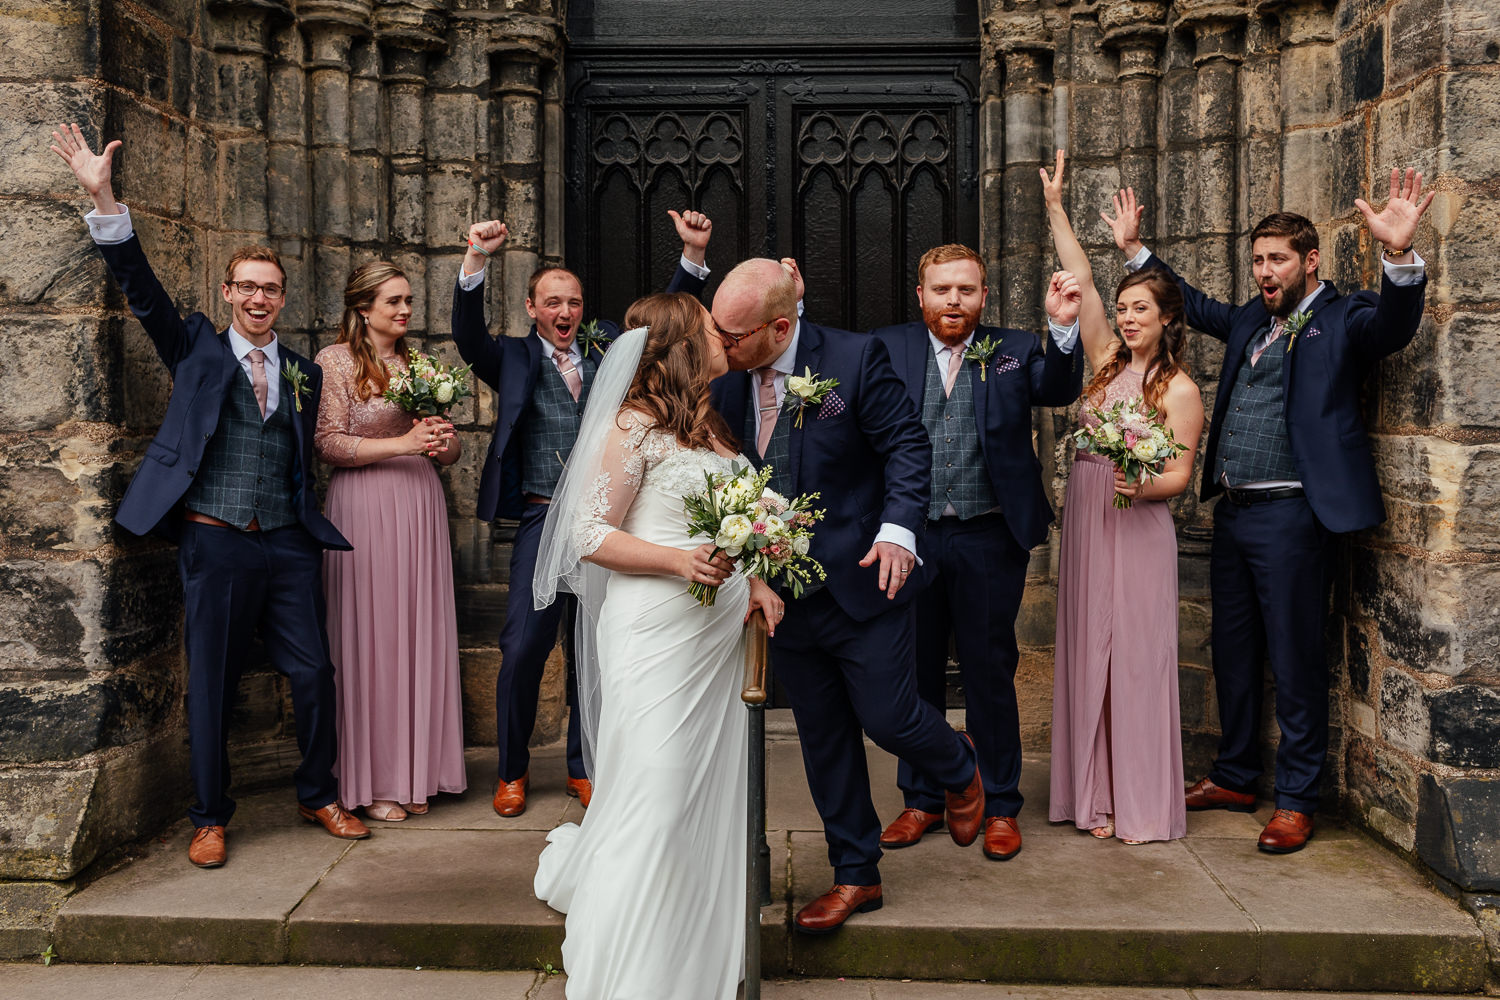 Glasgow Cathedral wedding bride groom bridal party group photo outside